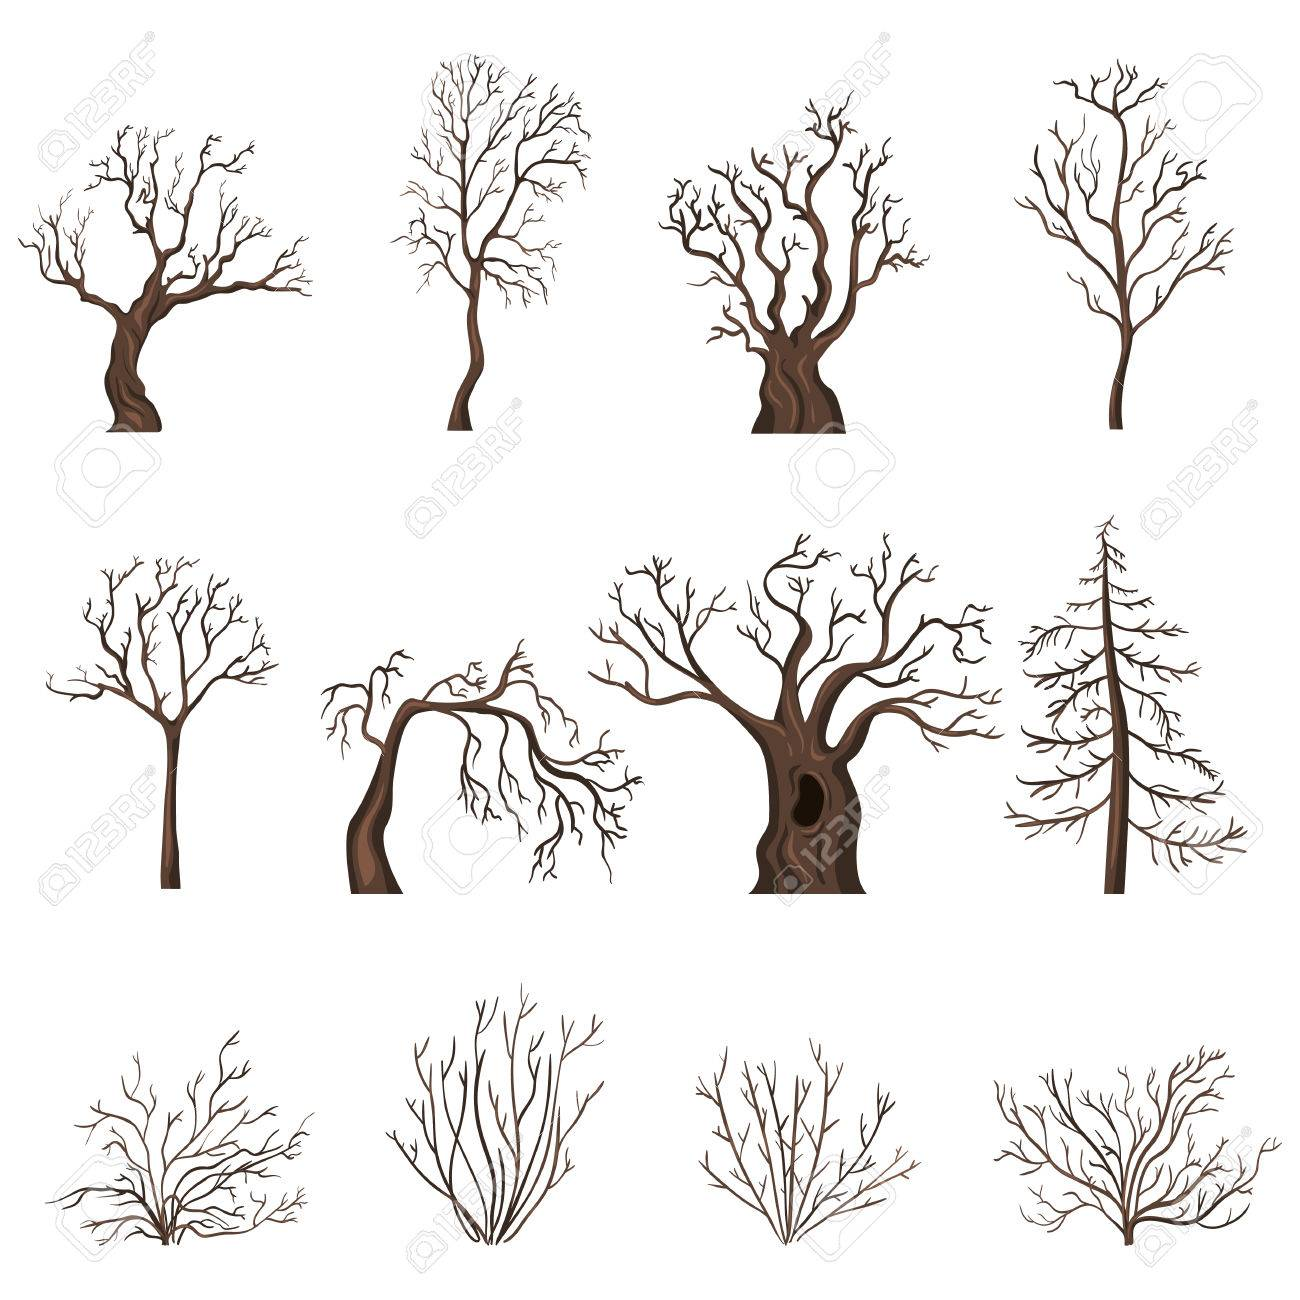 Vector Set Of Brown Cartoon Bare Trees And Shrubs Without Leaves Royalty Free Cliparts Vectors And Stock Illustration Image 67581646 Cartoon trees cartoon pics cartoon drawings easy drawings tree drawing for kids art for kids kids canvas art bible story crafts picture tree. vector set of brown cartoon bare trees and shrubs without leaves